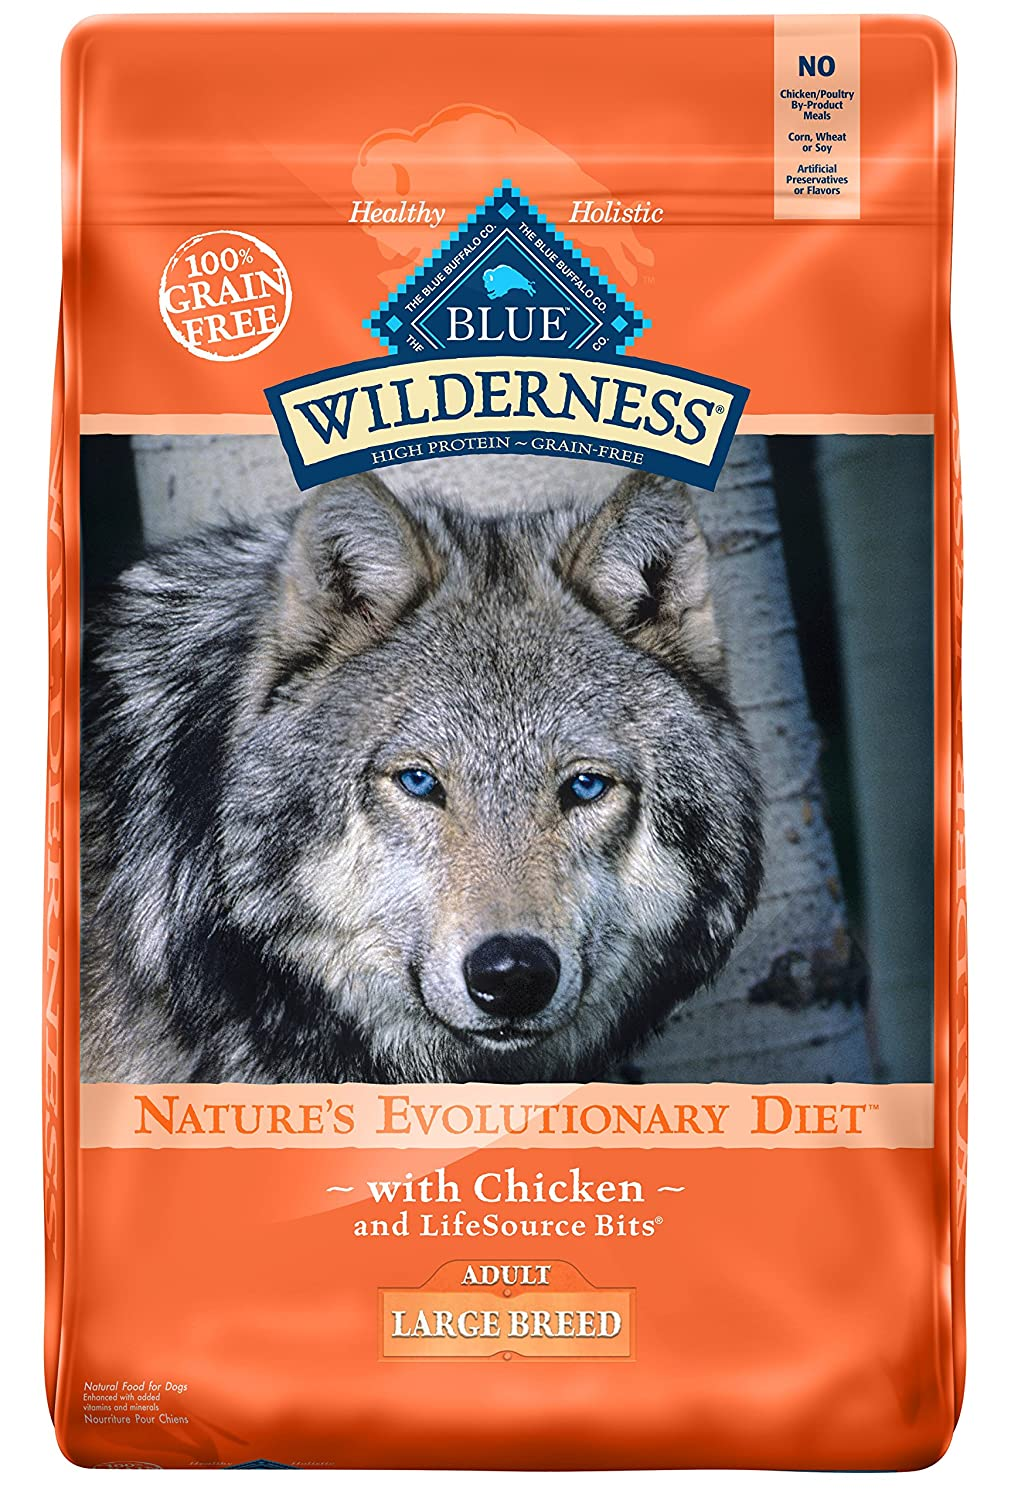 Best Dog Food For English Mastiff? Our Top Picks Reviewed